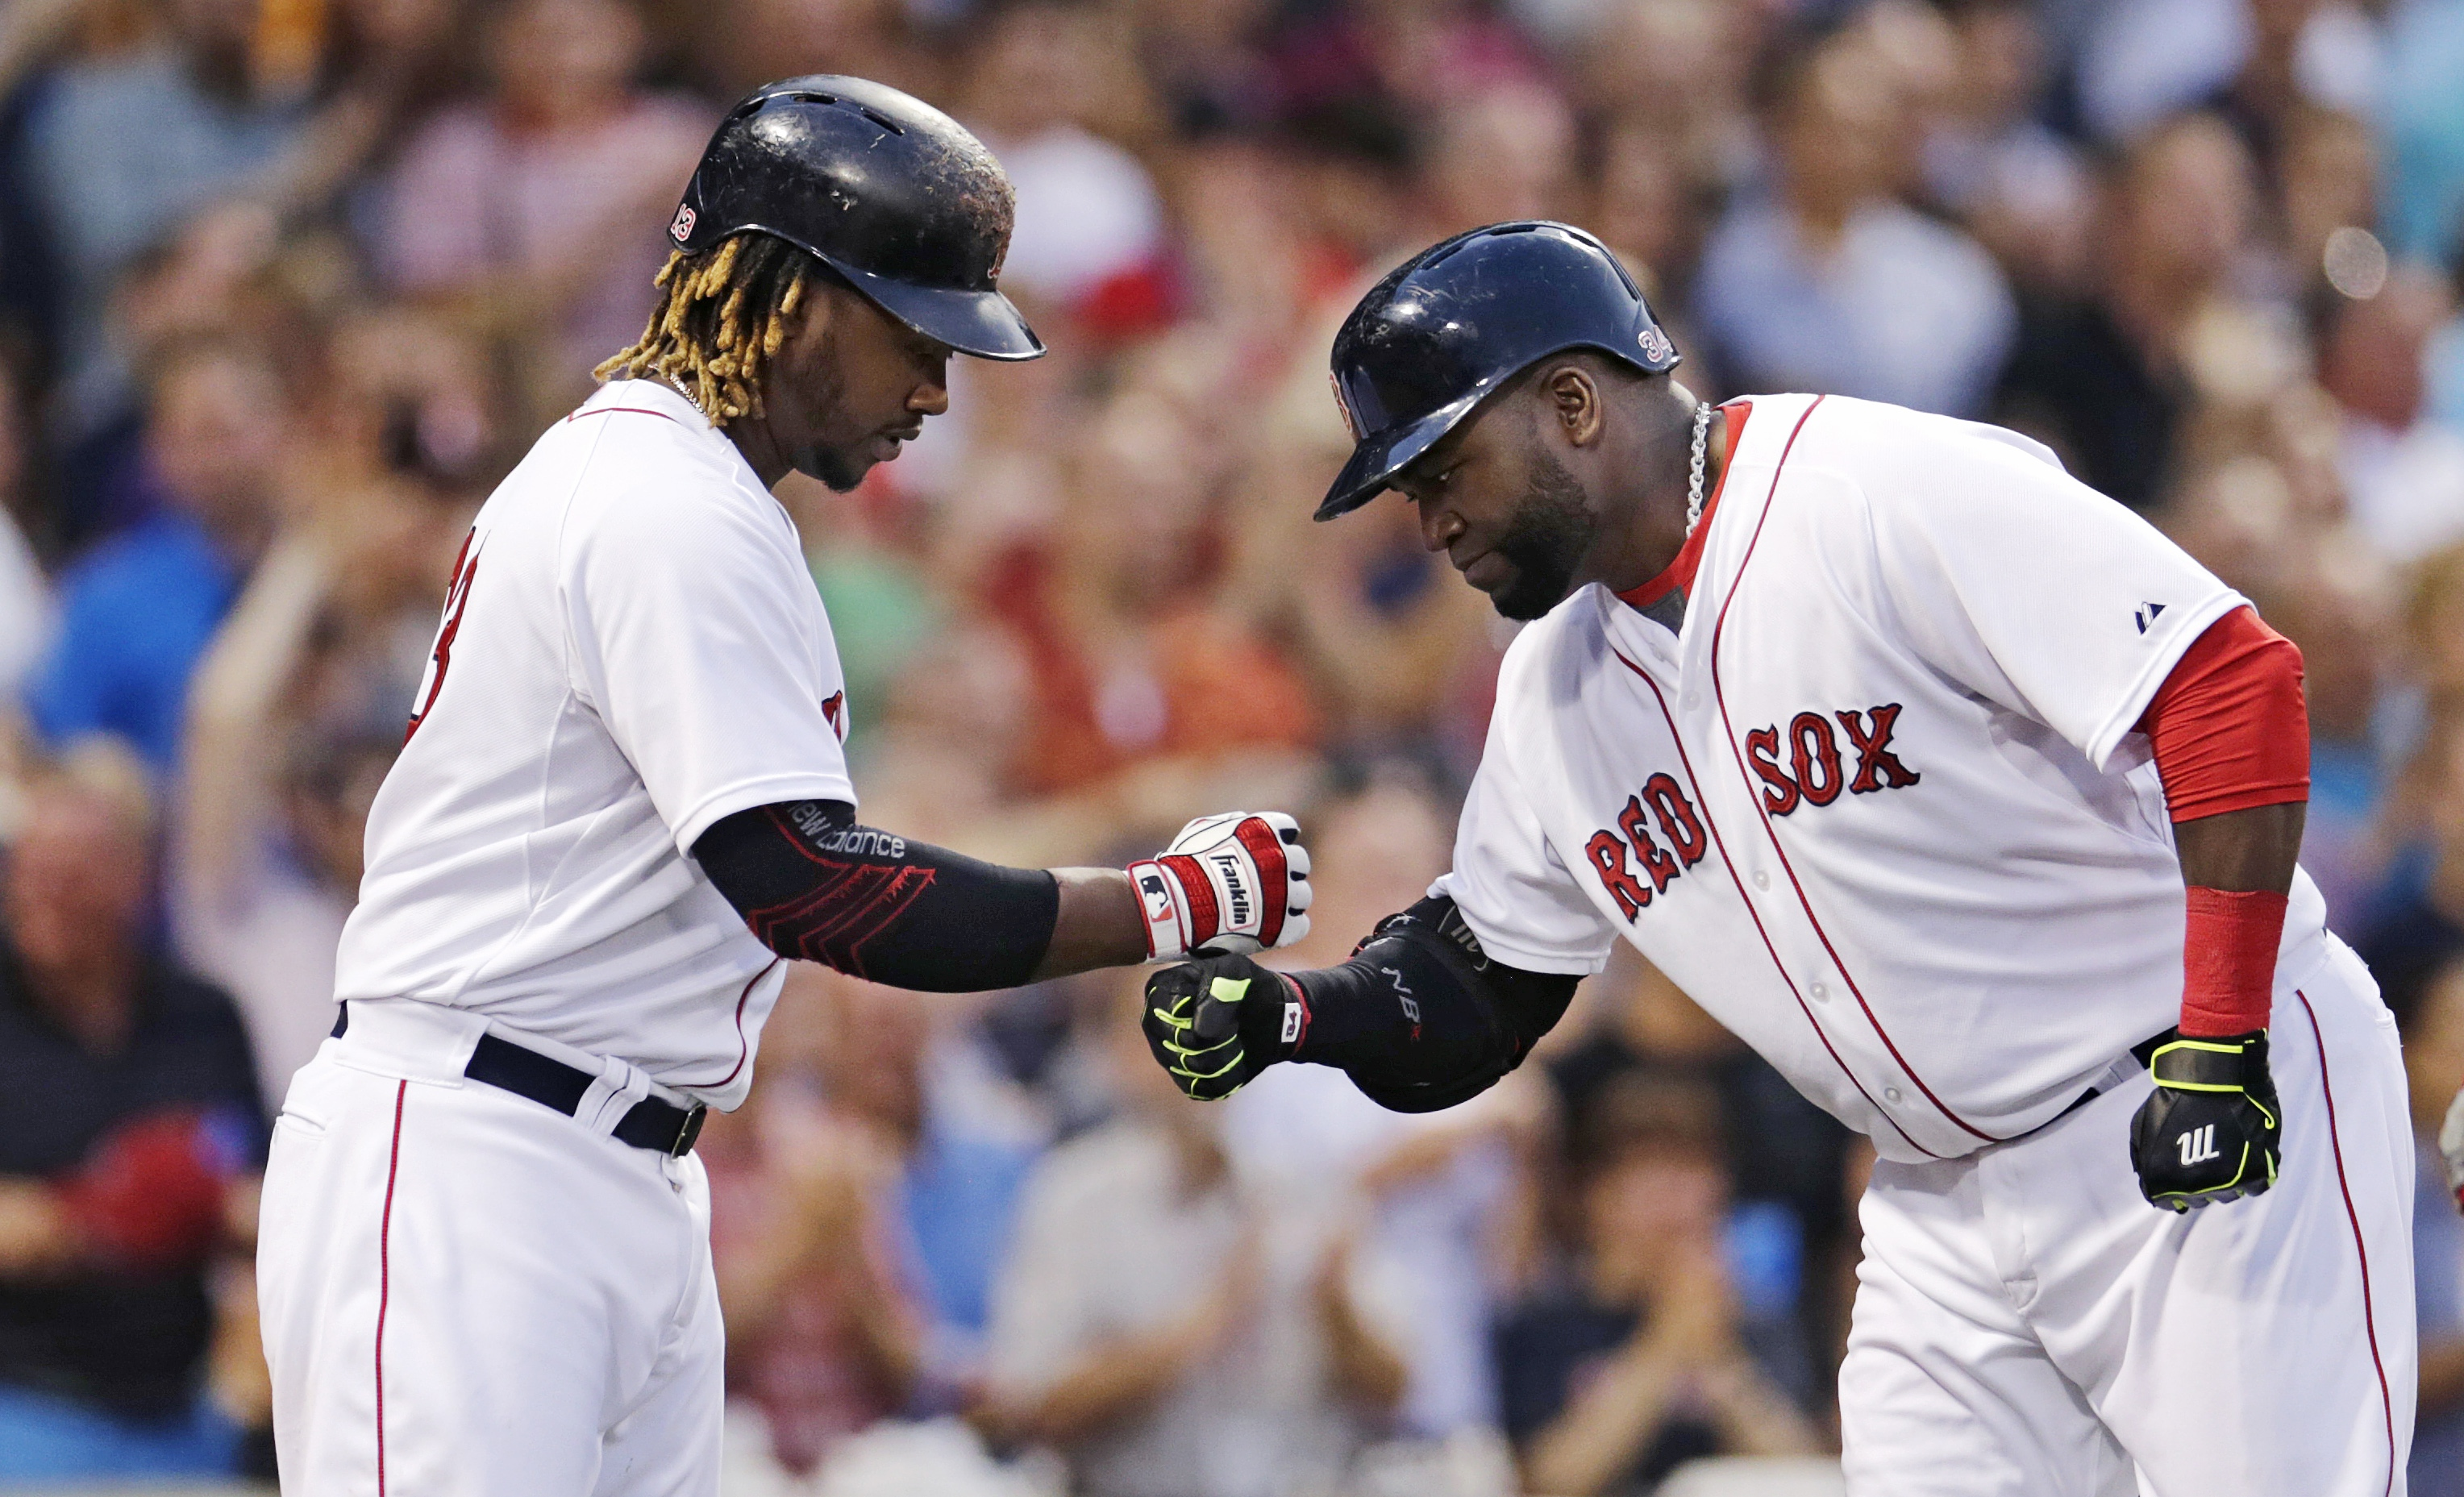 Boston Red Sox's David Ortiz is congratulated by designated hitter Hanley Ramirez after his two-run home run during the third inning a baseball game against the Miami Marlins at Fenway Park, Wednesday July 8, 2015, in Boston. (AP Photo/Charles Krupa)